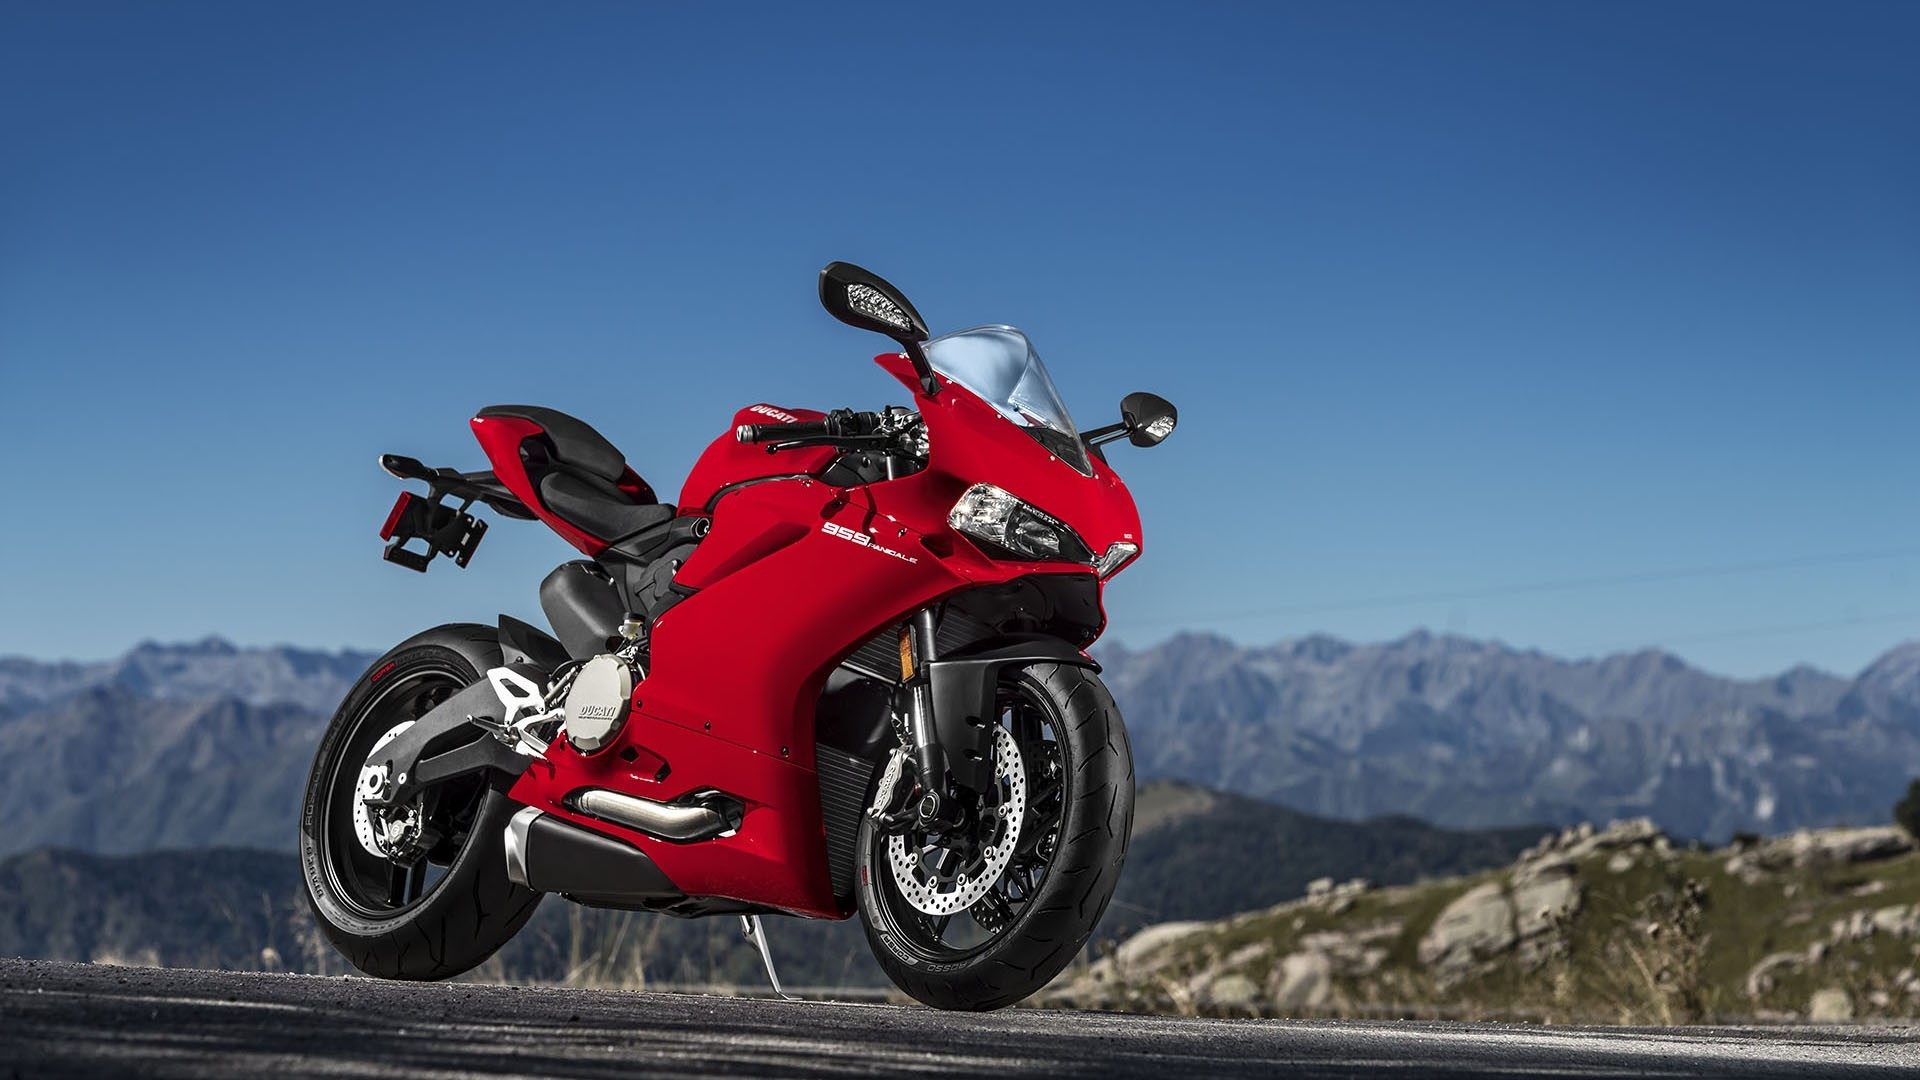 Wallpaper Hd Ducati Unique Ducati Panigale V4s Motorcycles To Sell On Ebay